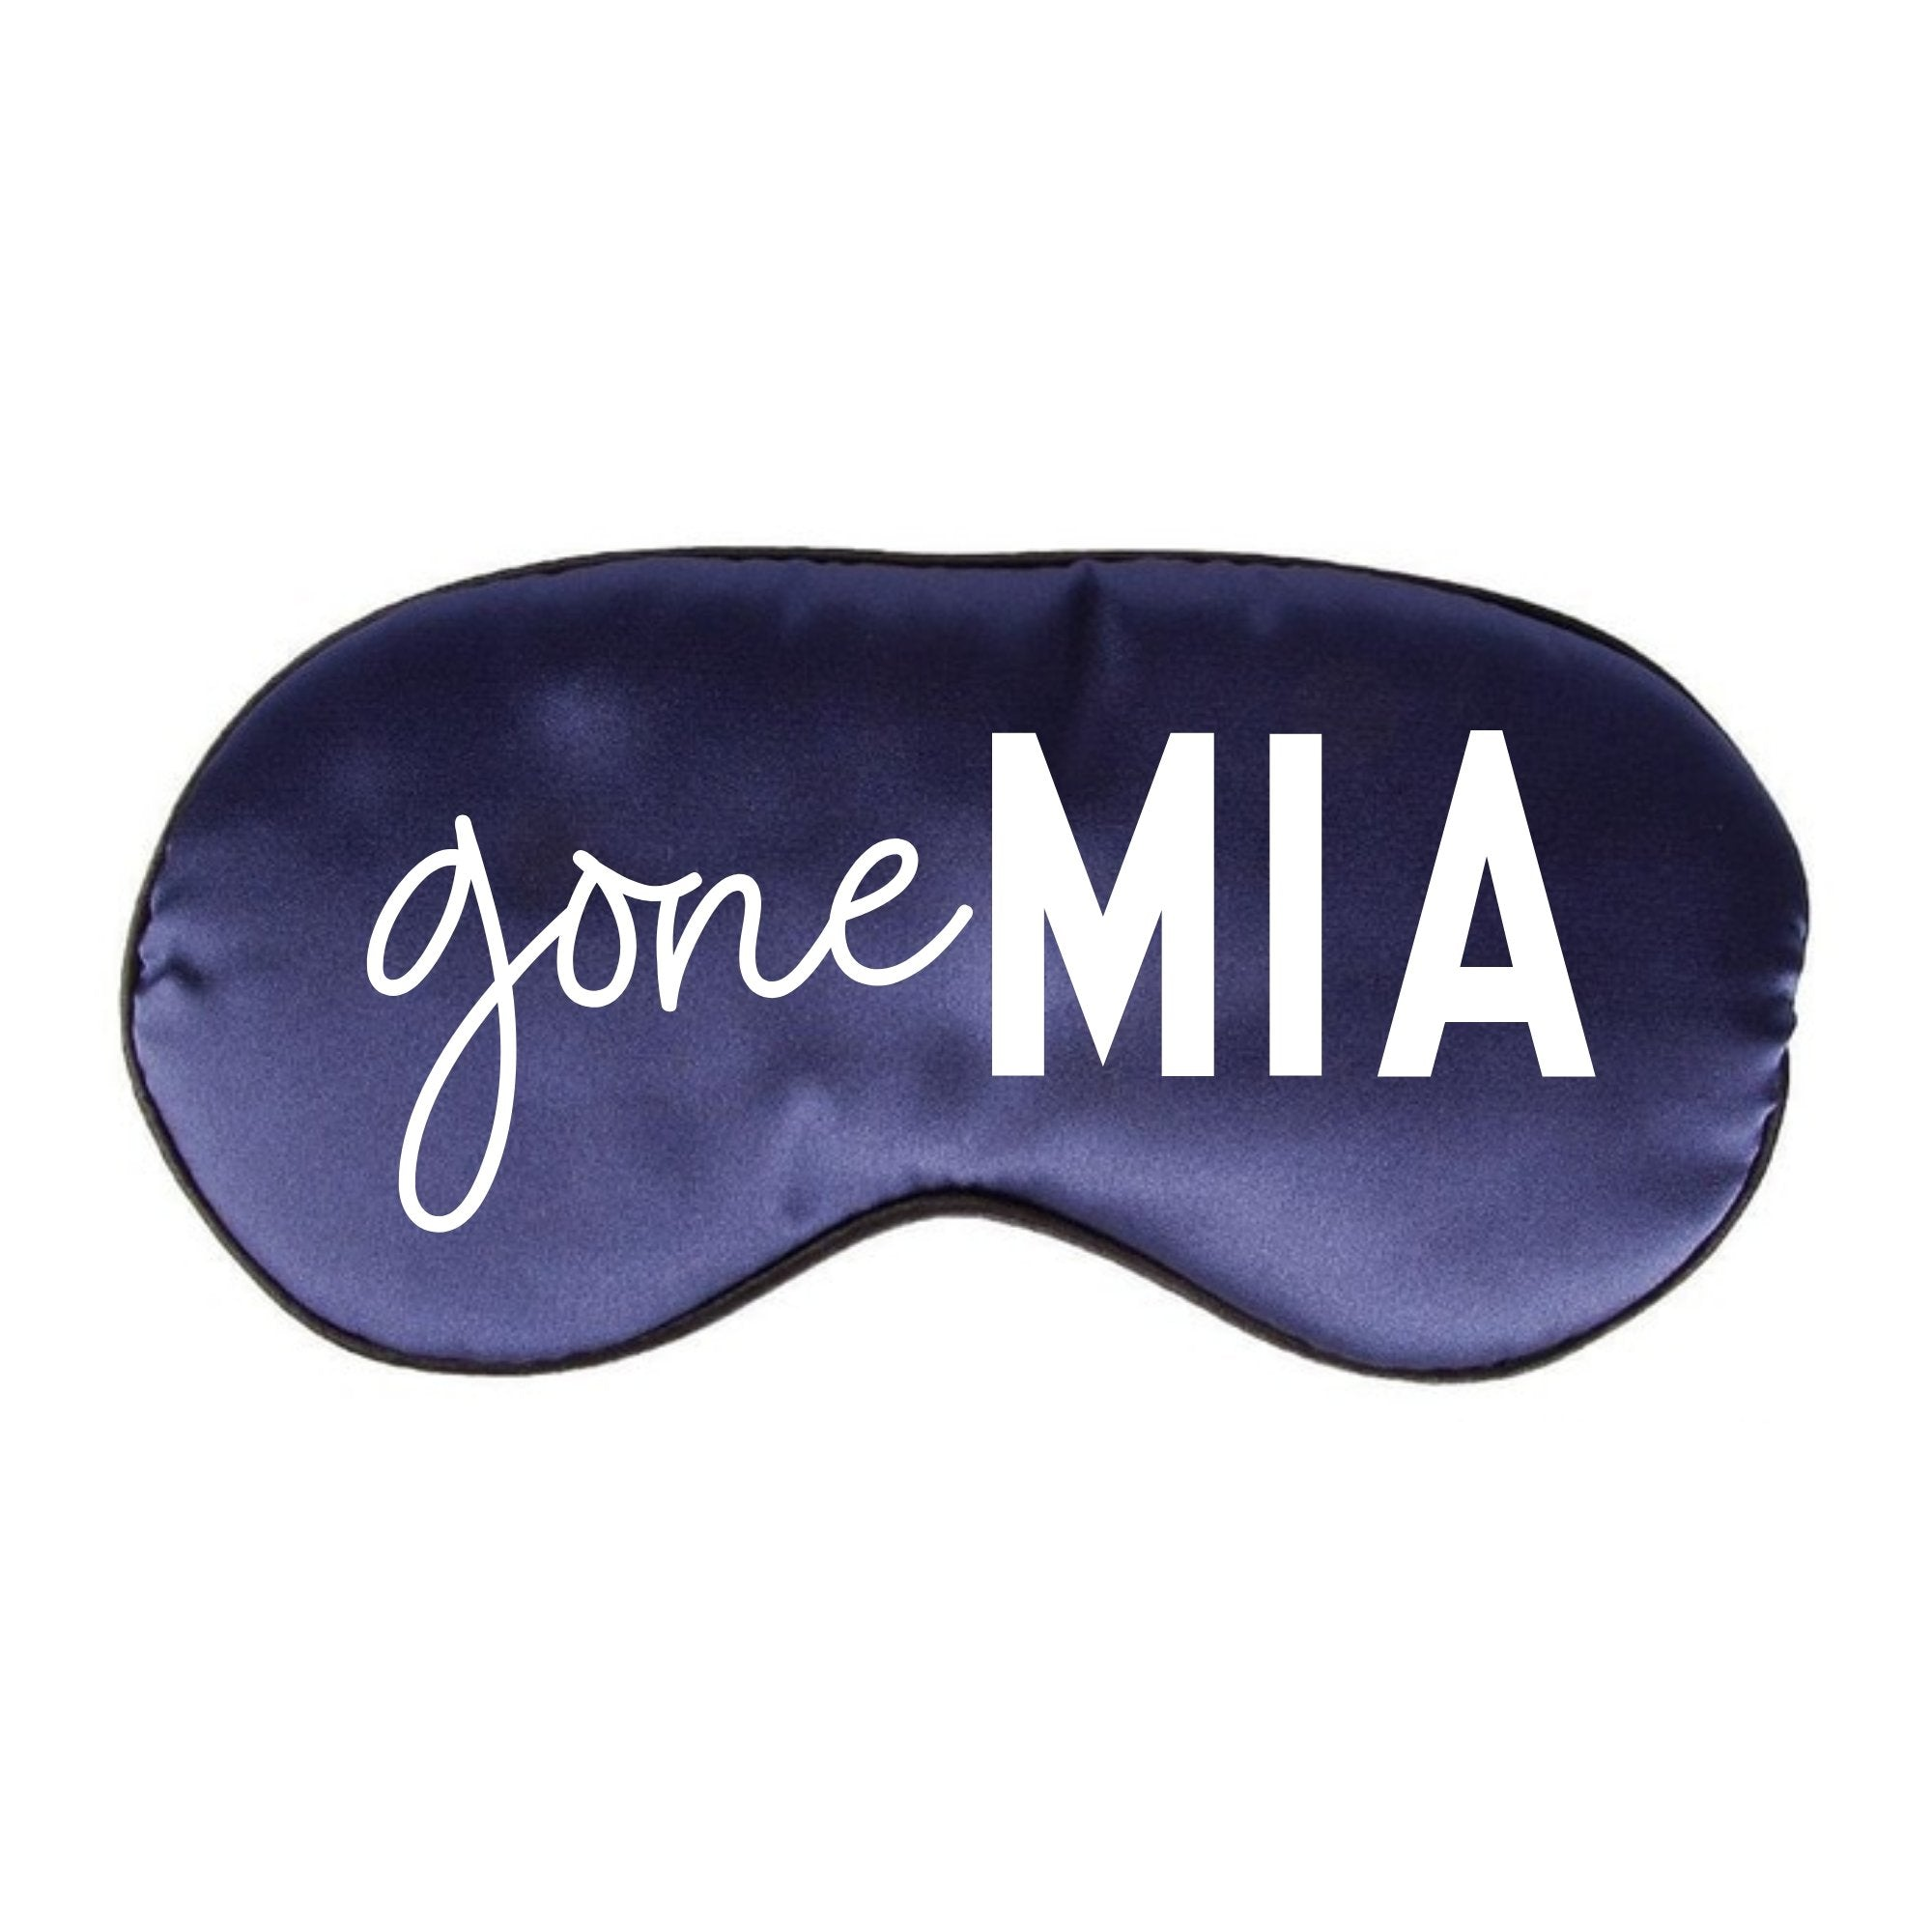 Gone MIA Sleep Mask - Sprinkled With Pink #bachelorette #custom #gifts